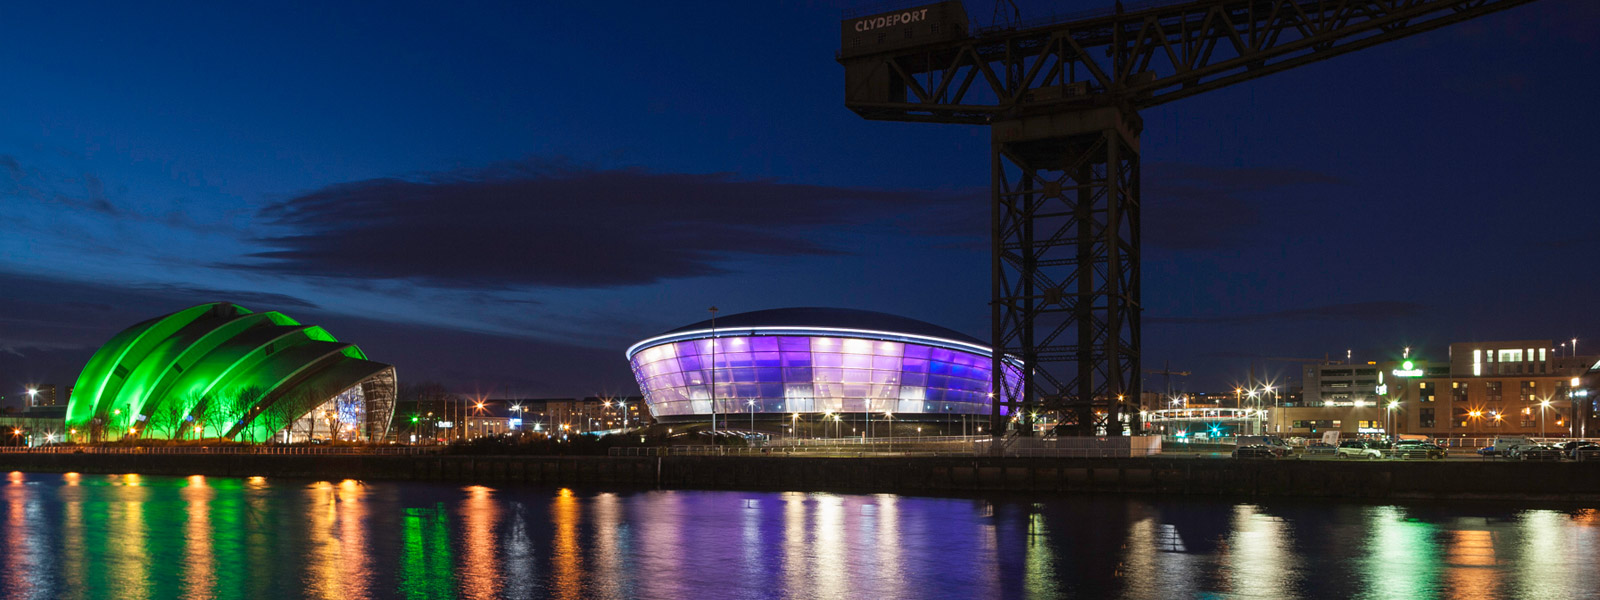 Glasgow clyde hydro evening